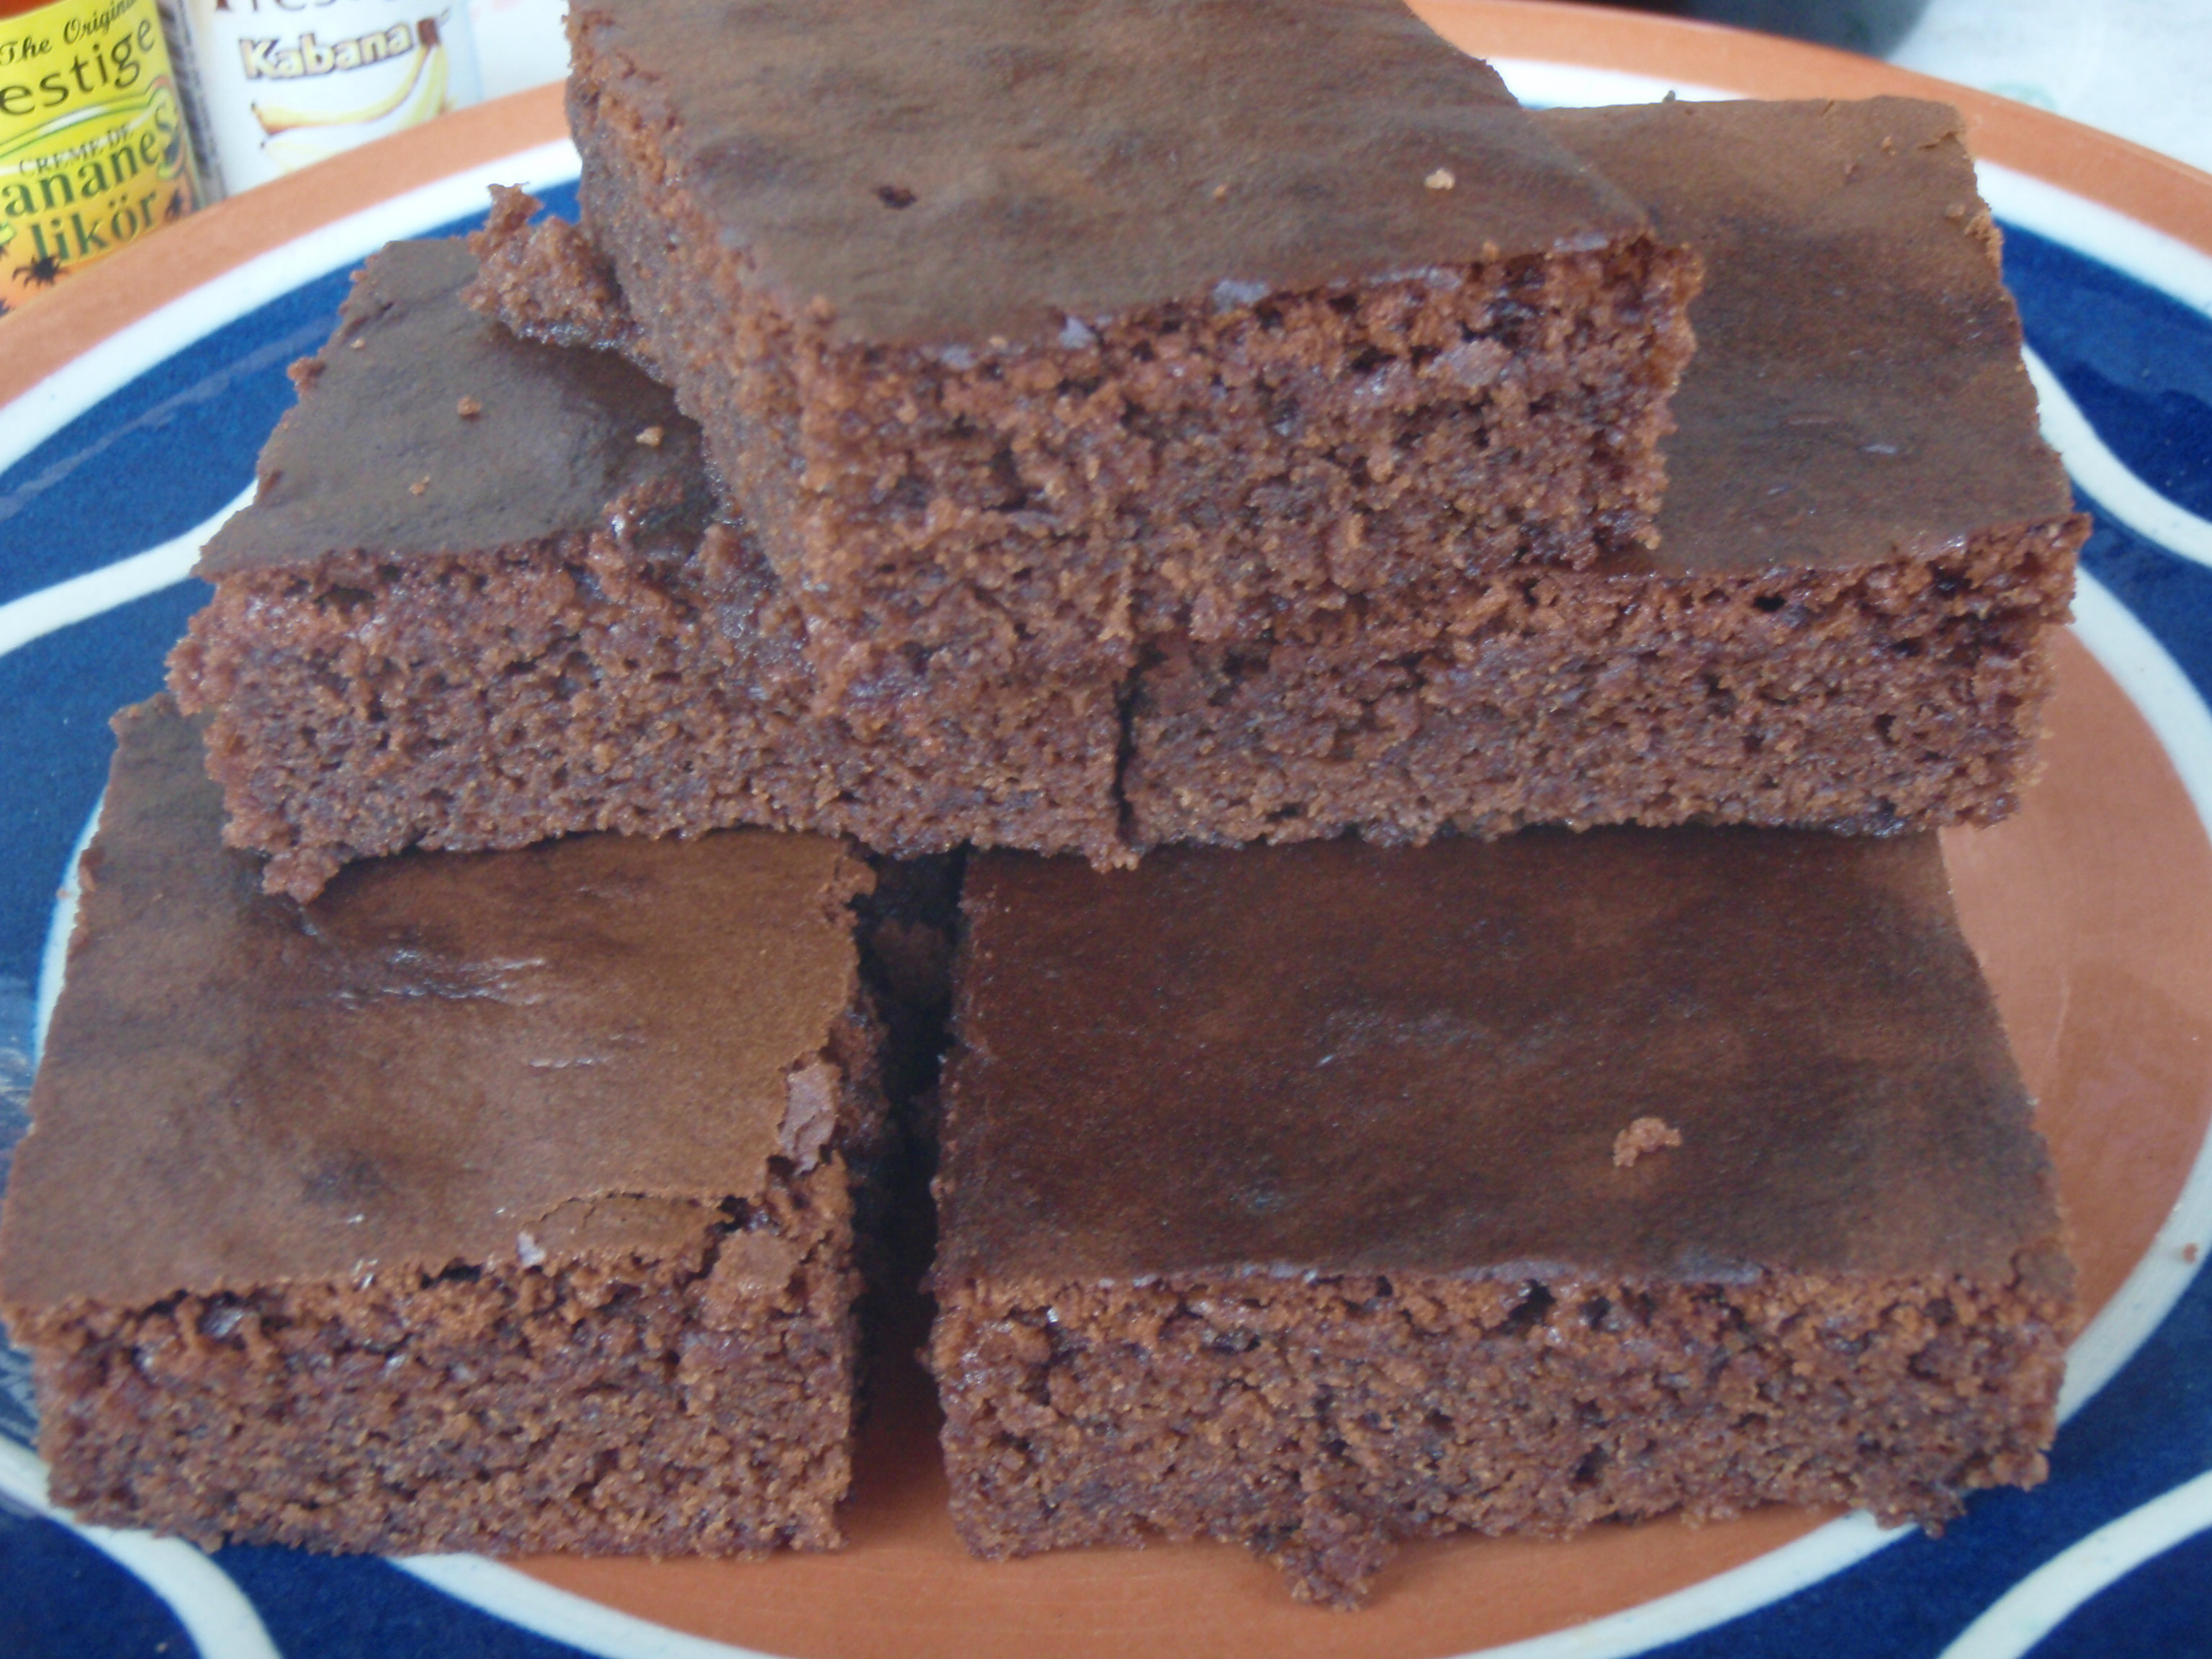 Cabana brownies